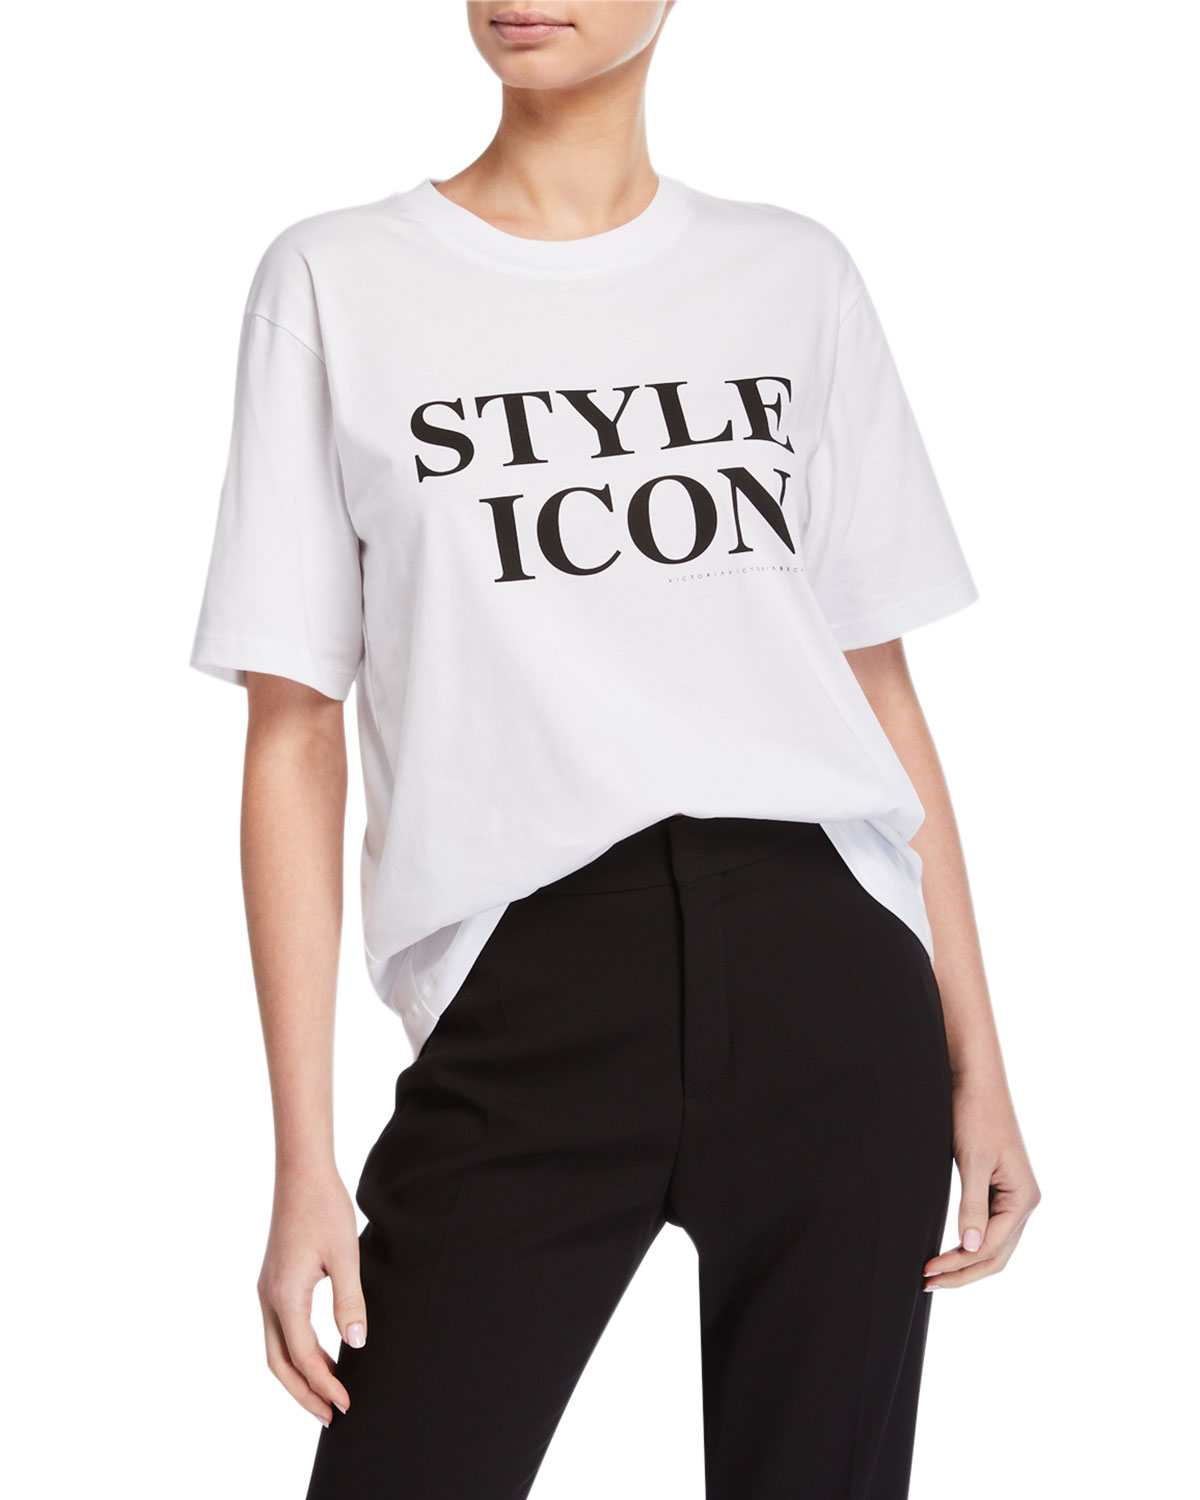 Victoria Victoria Beckham Shorts STYLE ICON SHORT-SLEEVE TEE